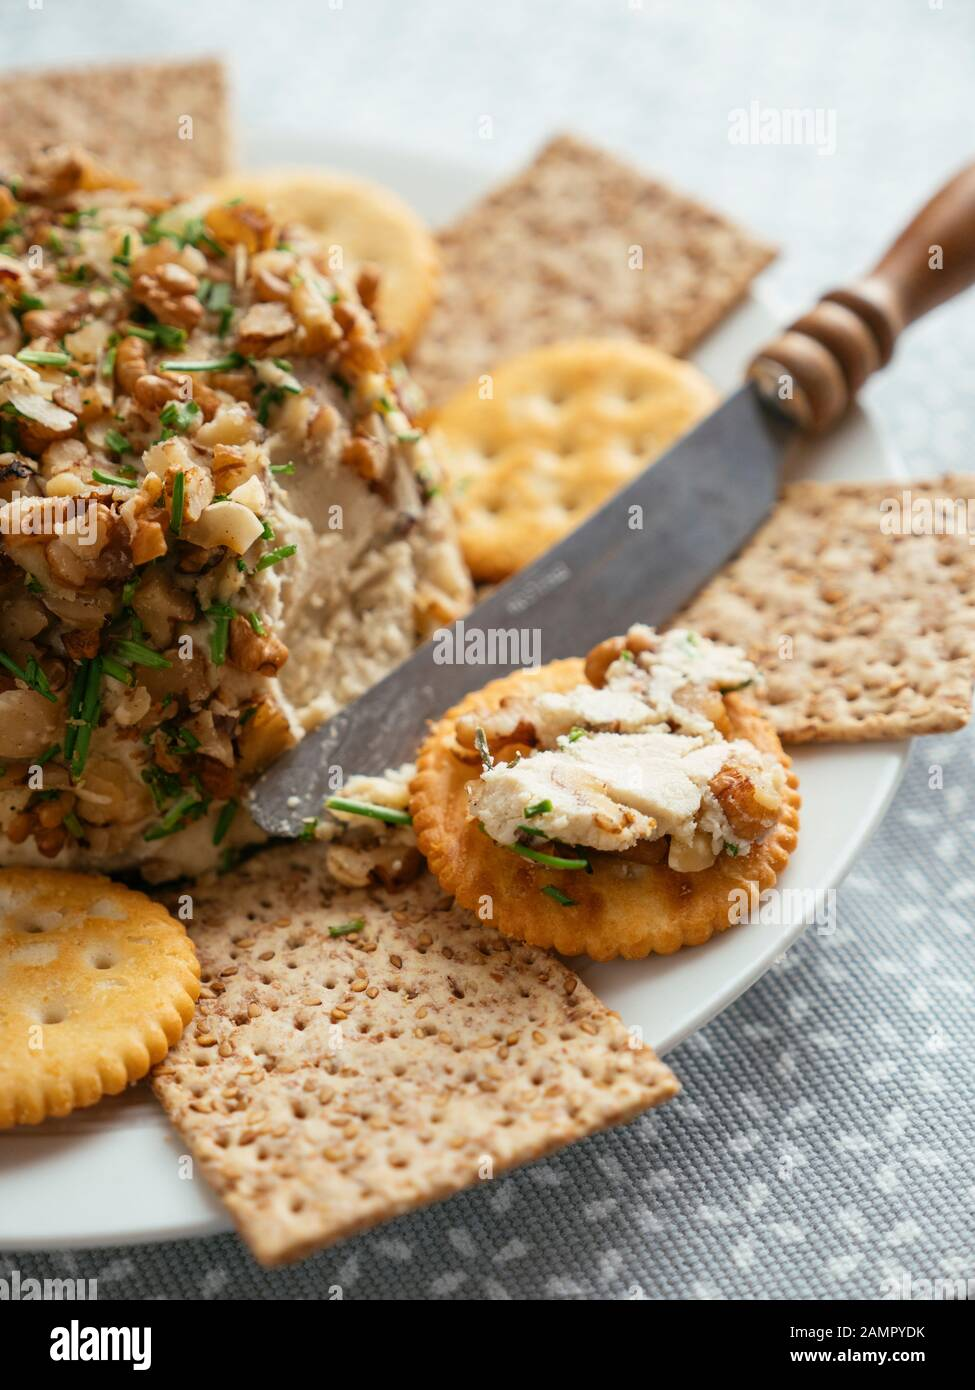 Home made vegan cheddar with nuts, served with crackers. Stock Photo